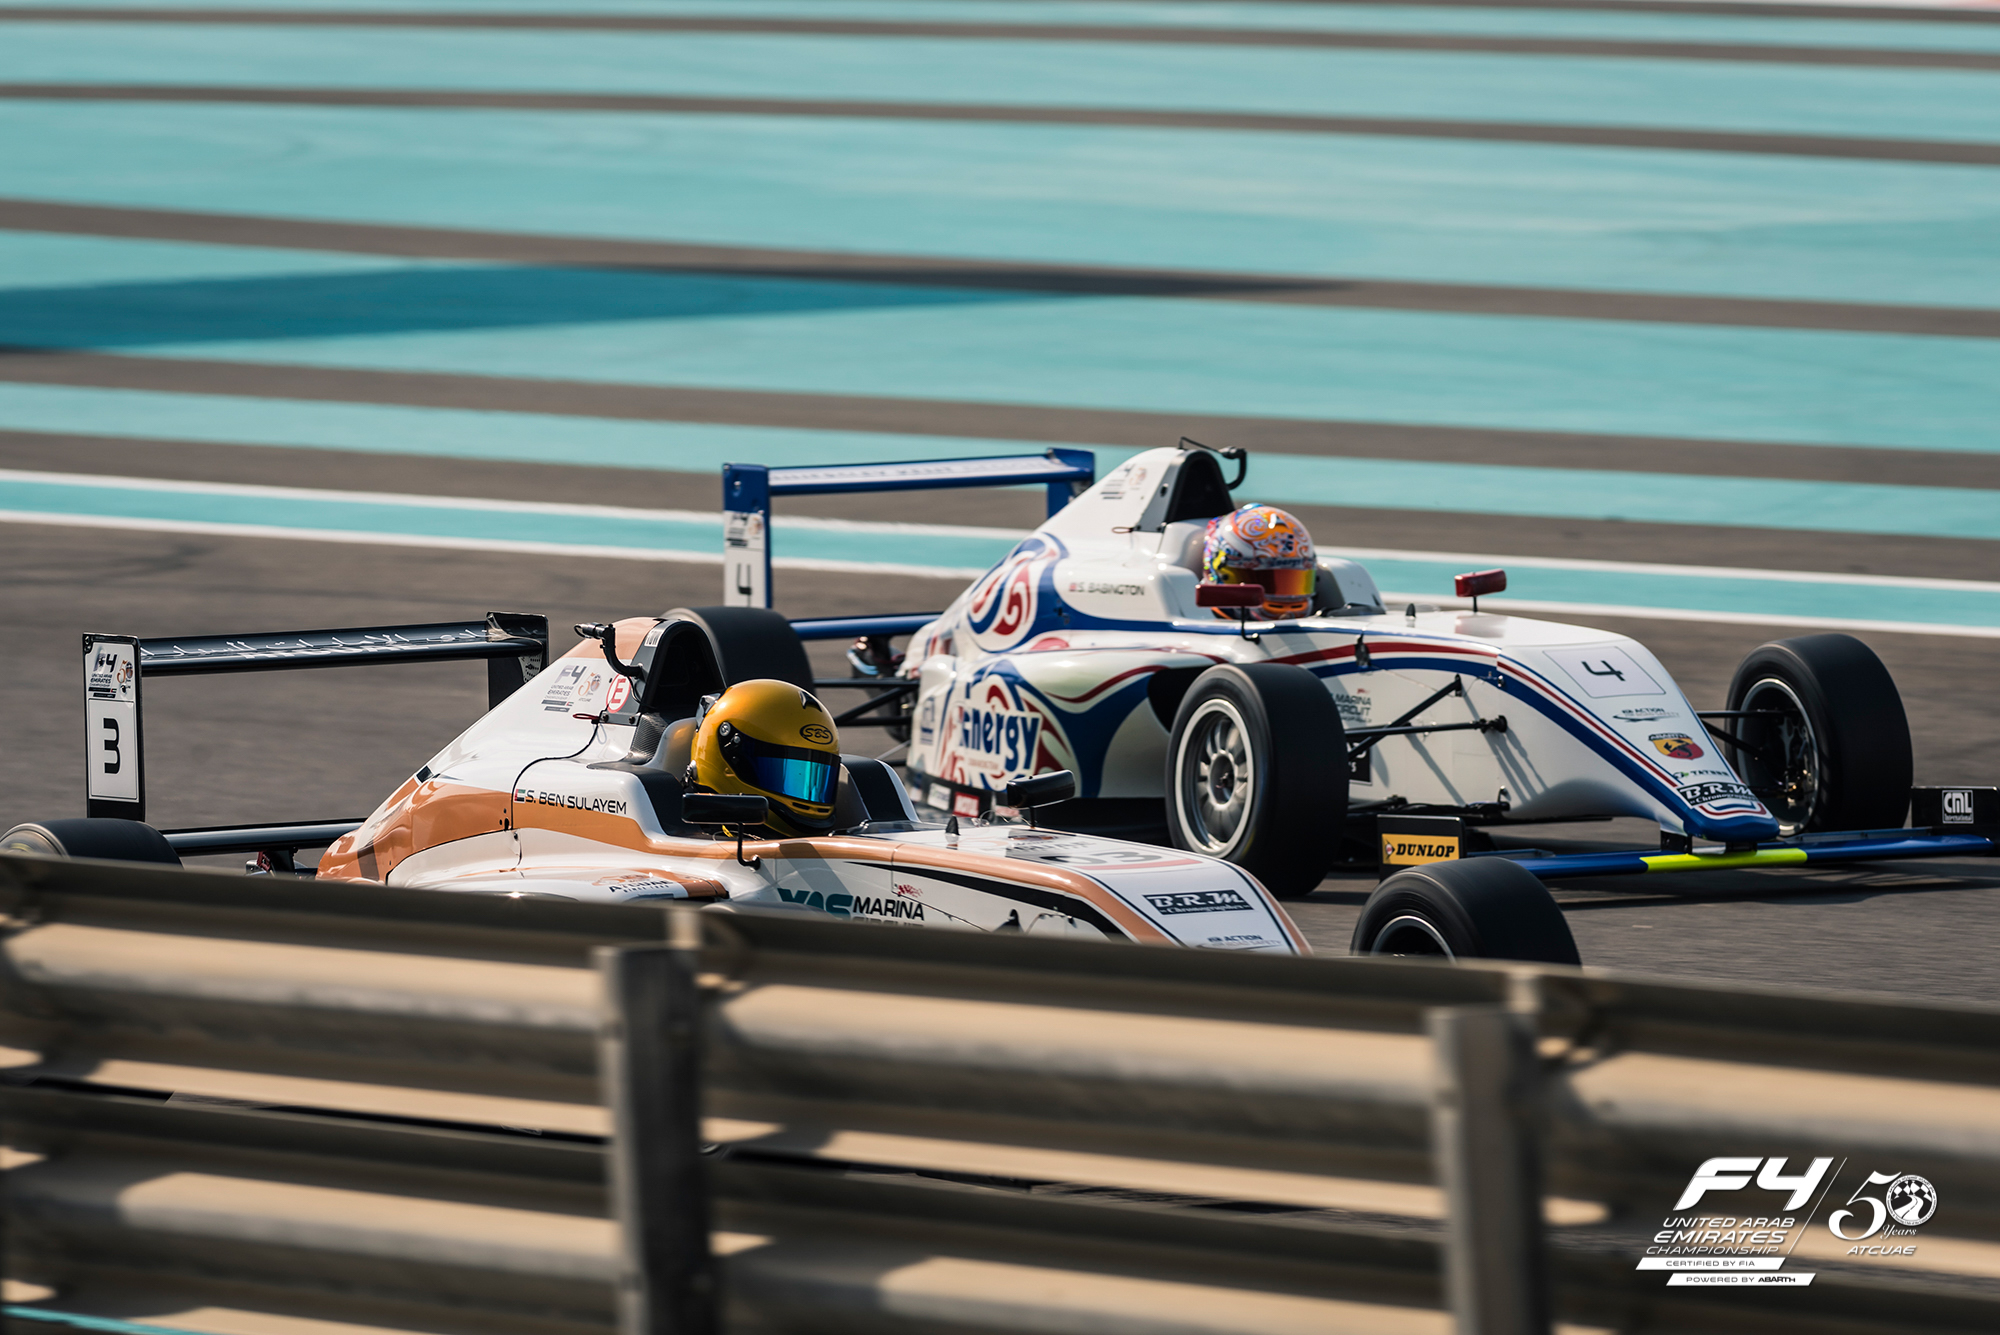 2016 16 12   F4 Second Round   Abu Dhabi 13